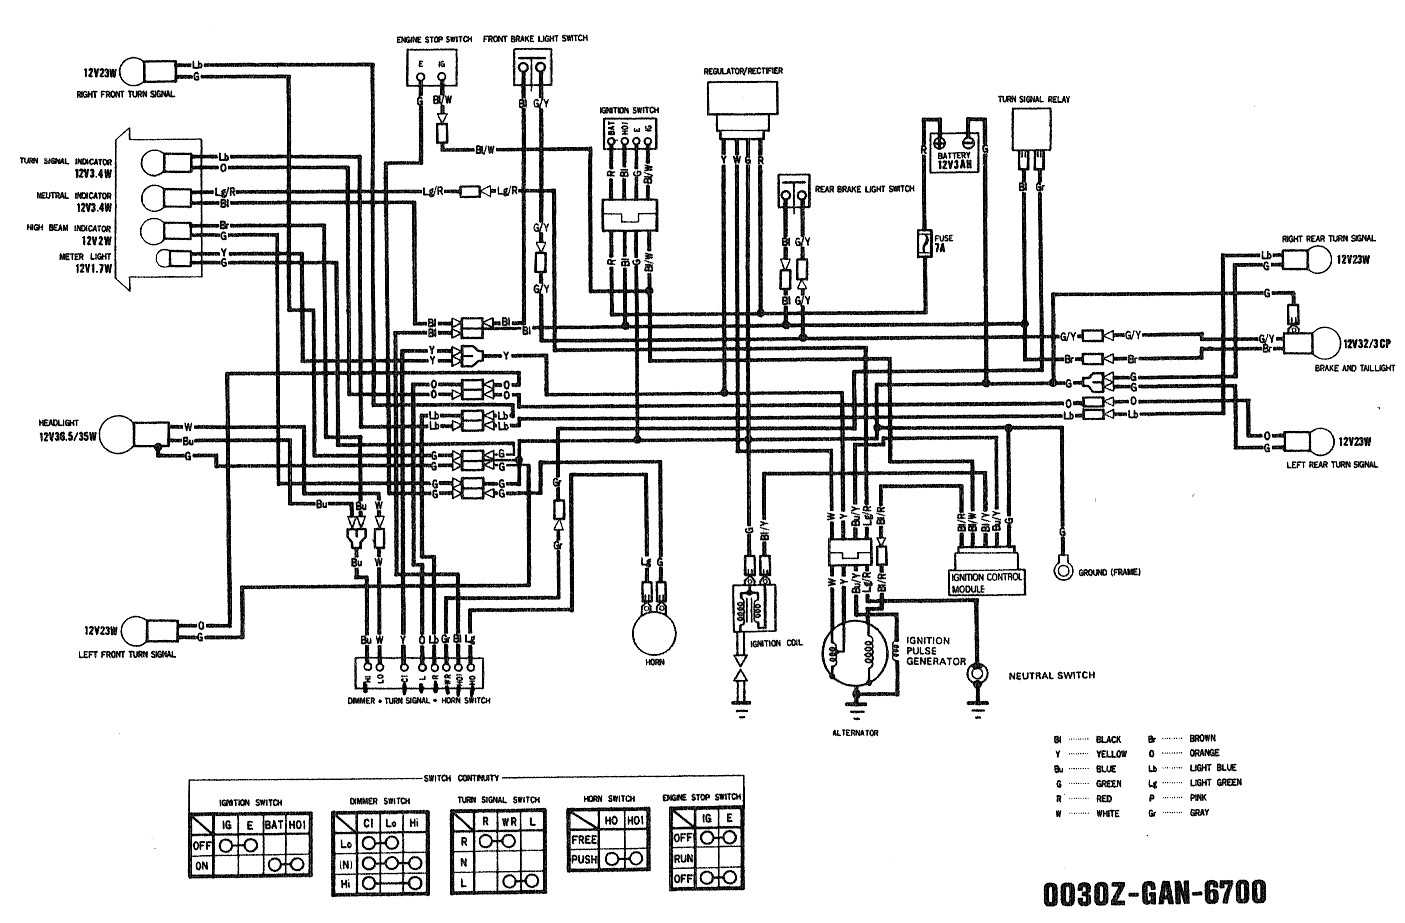 Na50 Wiring Diagram Trusted Schematics 1982 Honda Express Diagrams Electrical Auto Residential